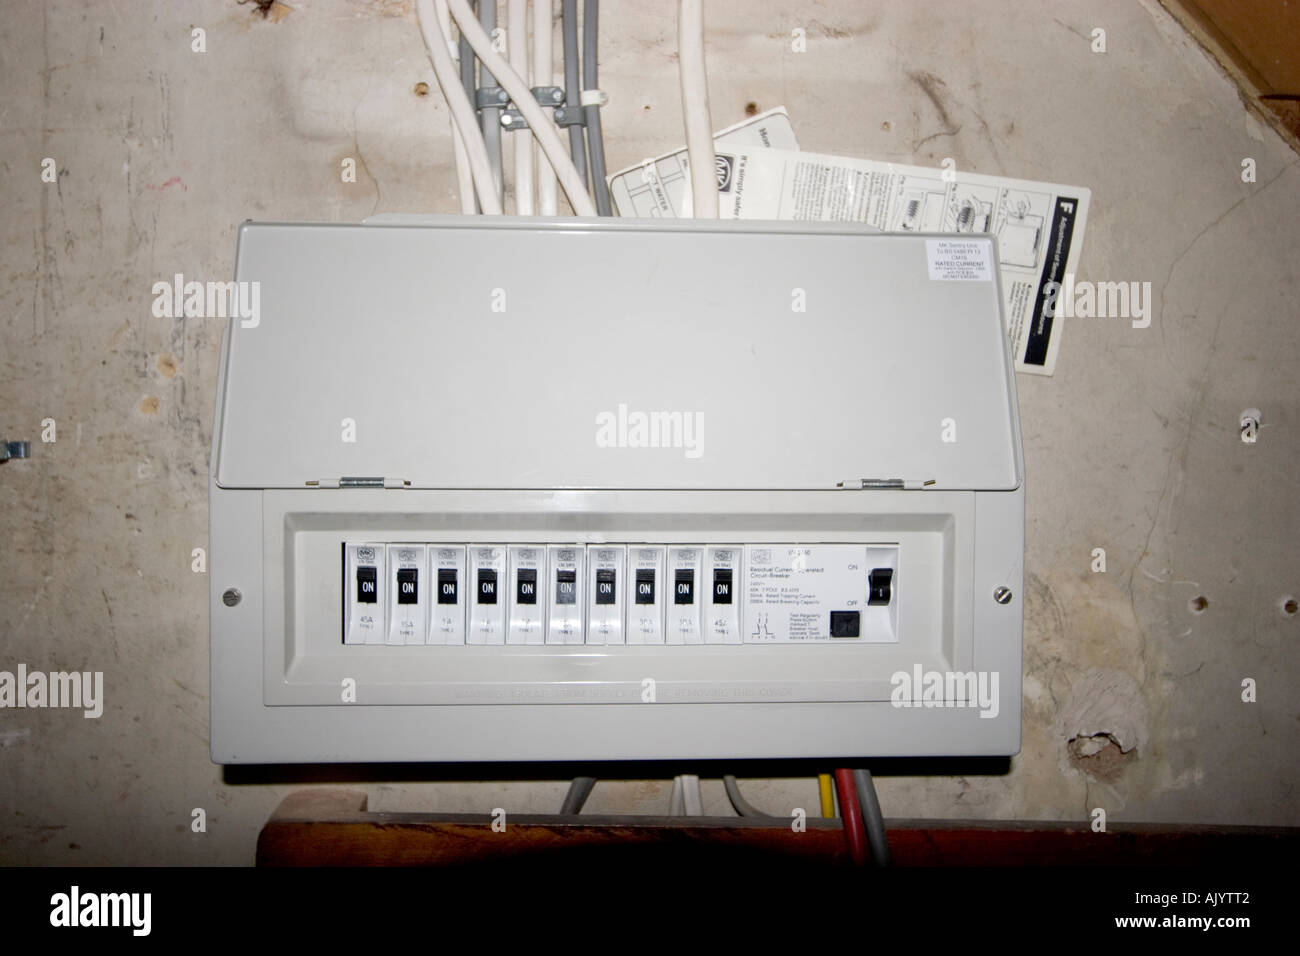 hight resolution of fusebox house stock photos fusebox house stock images alamy old home fuse box diagram house